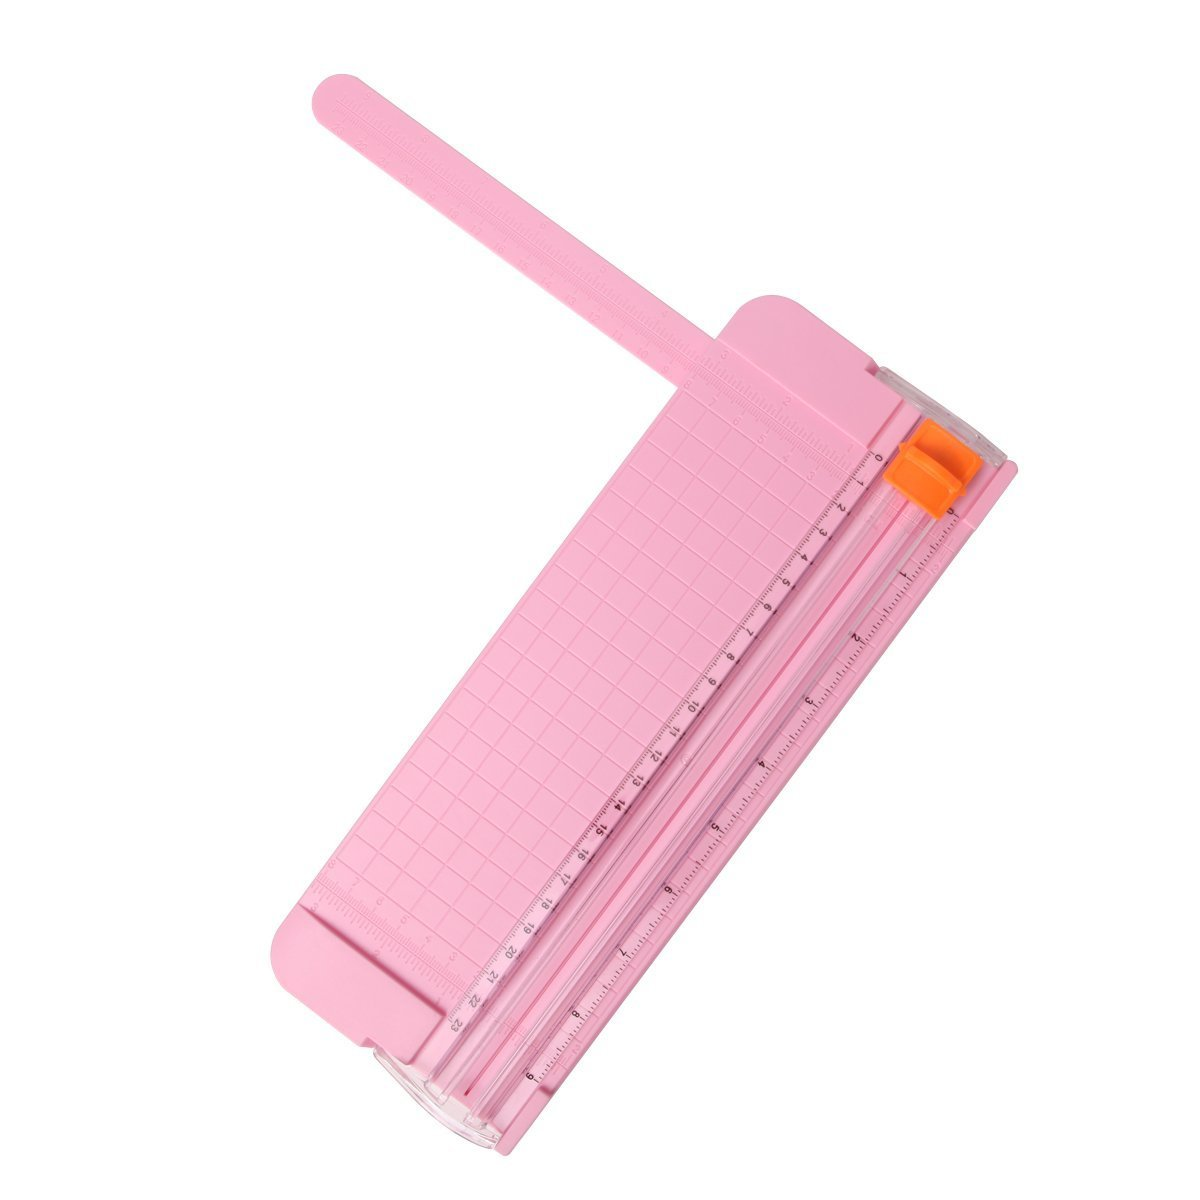 best paper trimmer Shop dahle paper trimmers at staples save big on our wide selection of dahle  paper trimmers and get fast & free shipping on select orders.